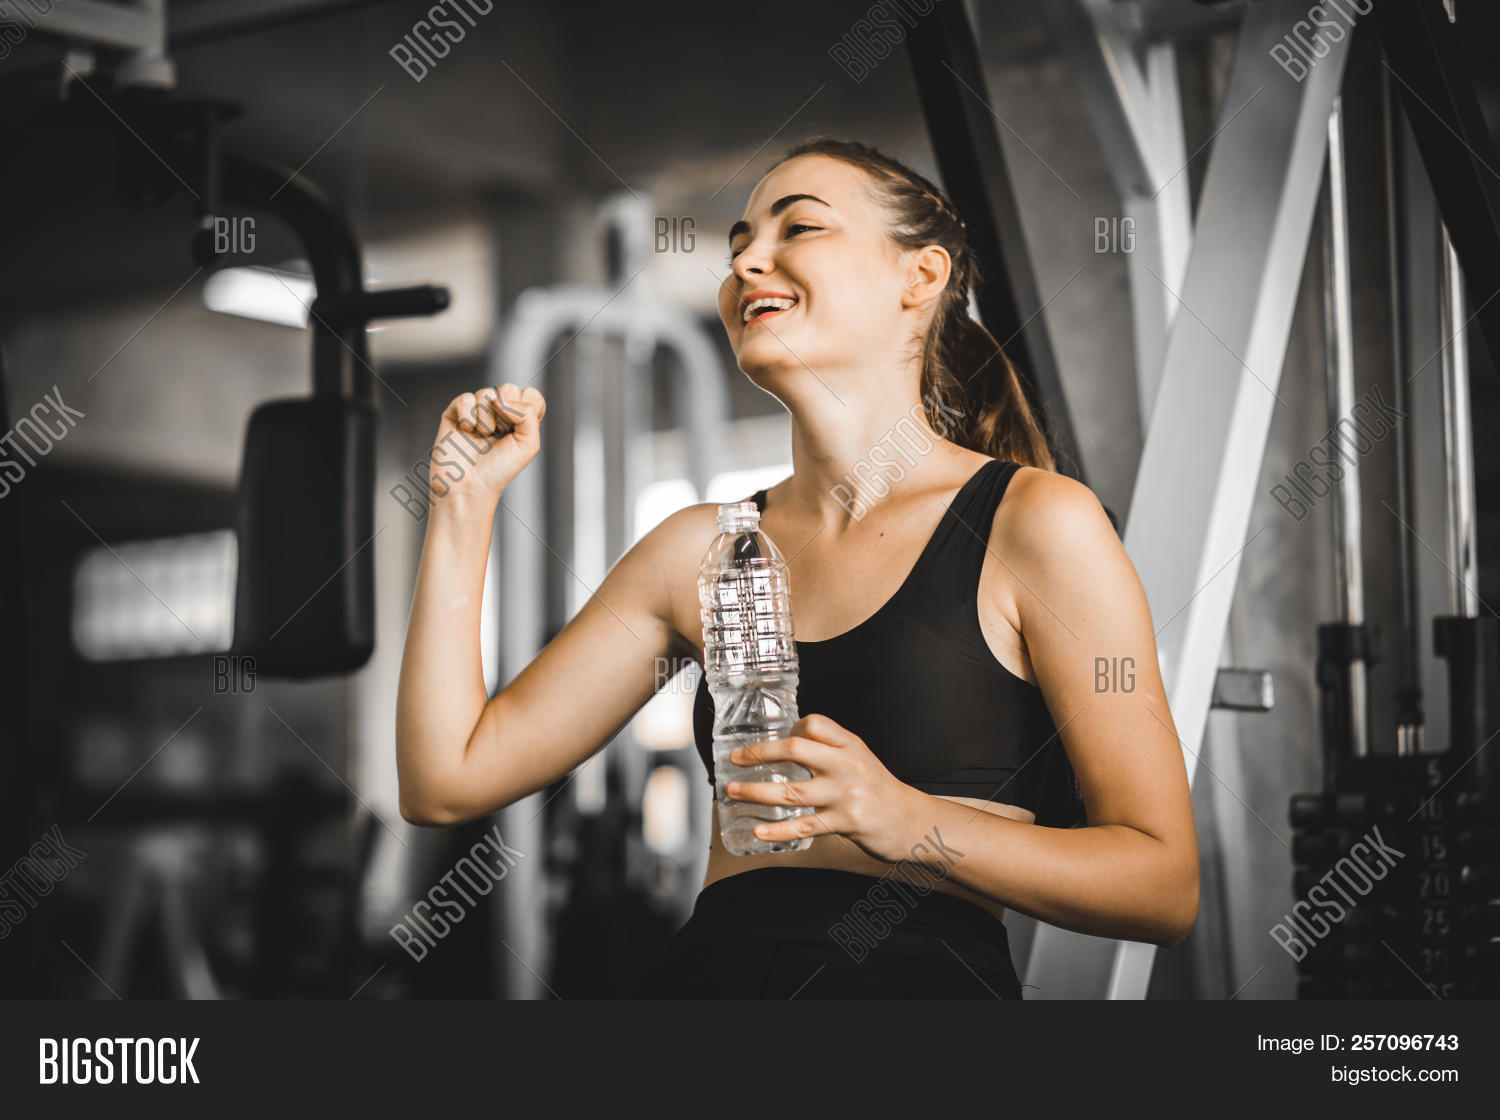 Fit Young Woman Caucasian Sitting And Resting After Workout Or Exercise In Fitness Gym. Woman At Gym